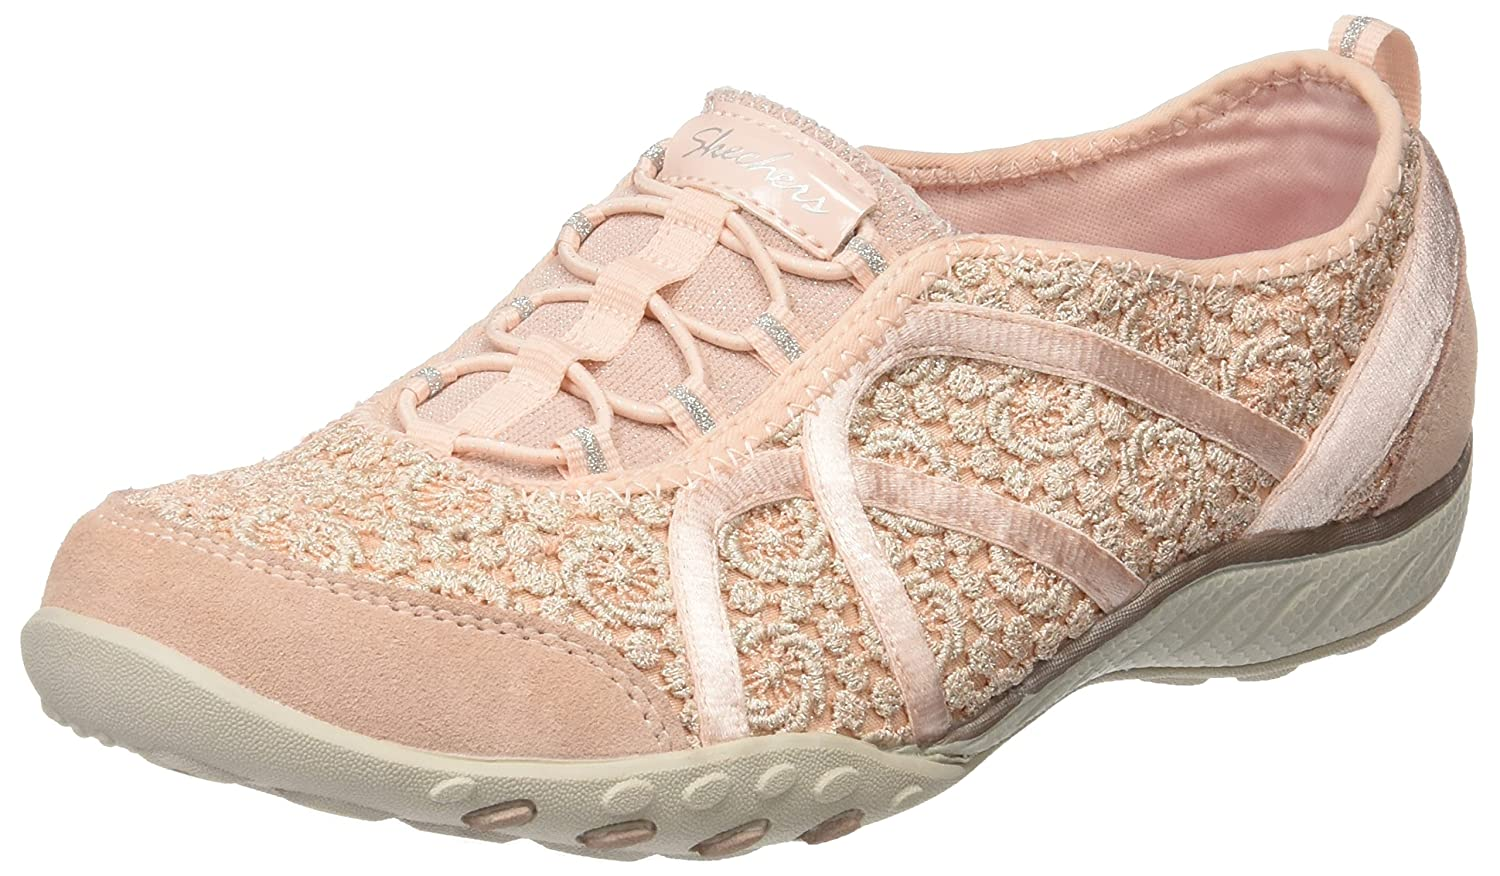 Skechers Damen Breathe-Easy-Sweet Darling Sneaker  36 EU|Pink (Pksl)